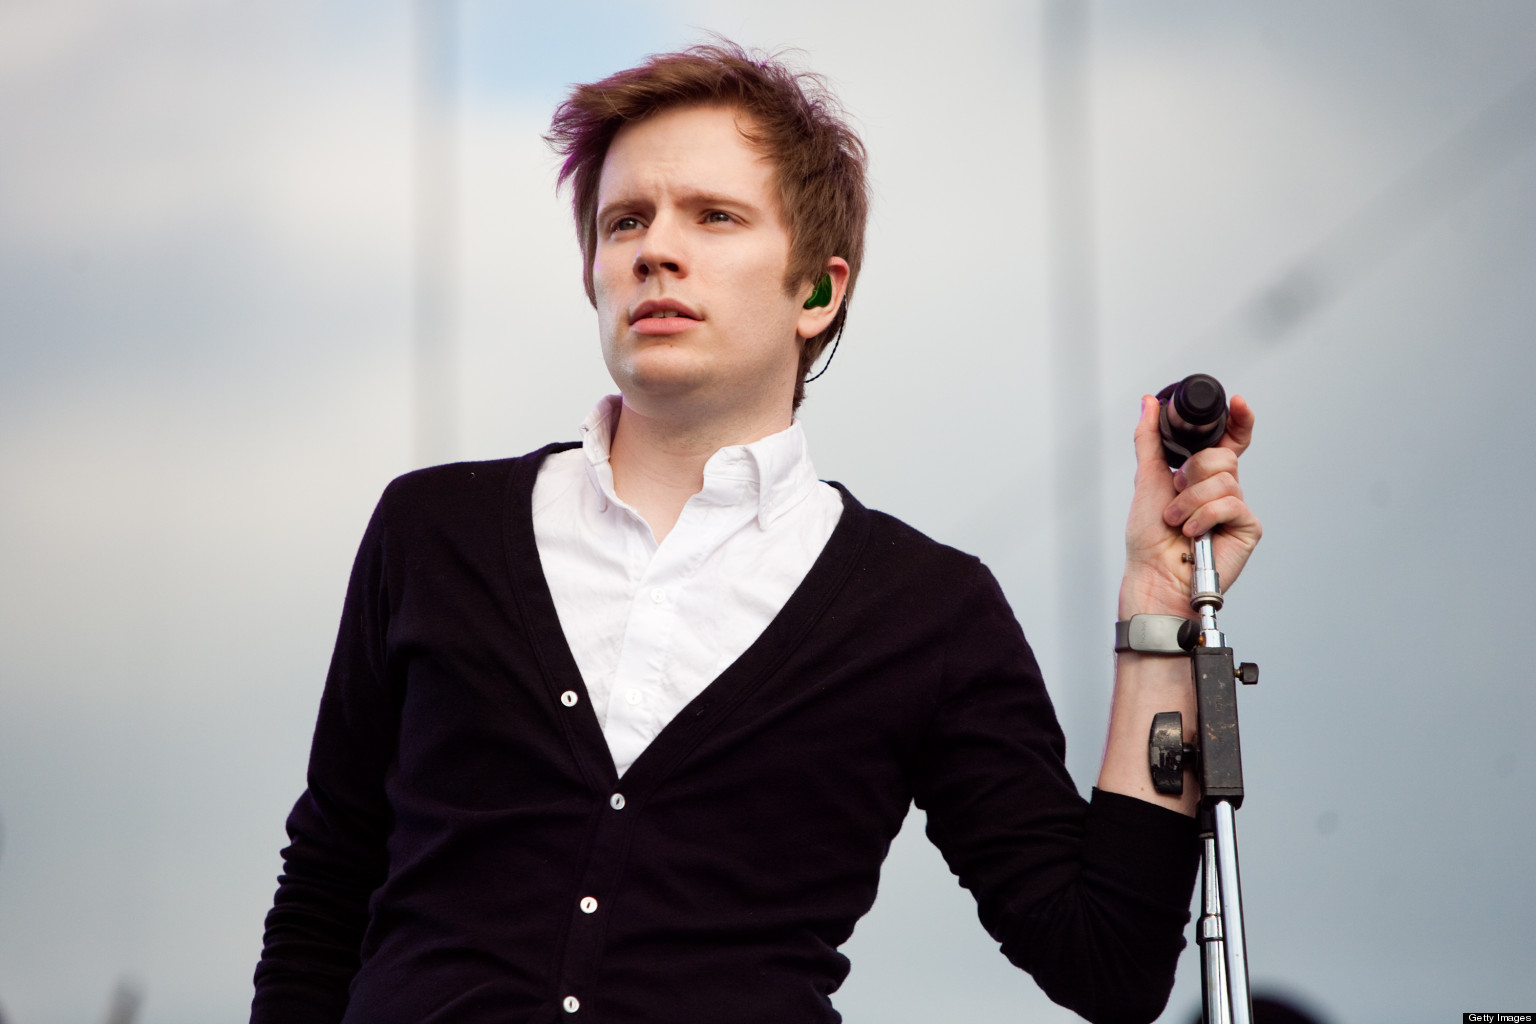 The 32-year old son of father (?) and mother(?), 182 cm tall Patrick Stump in 2017 photo